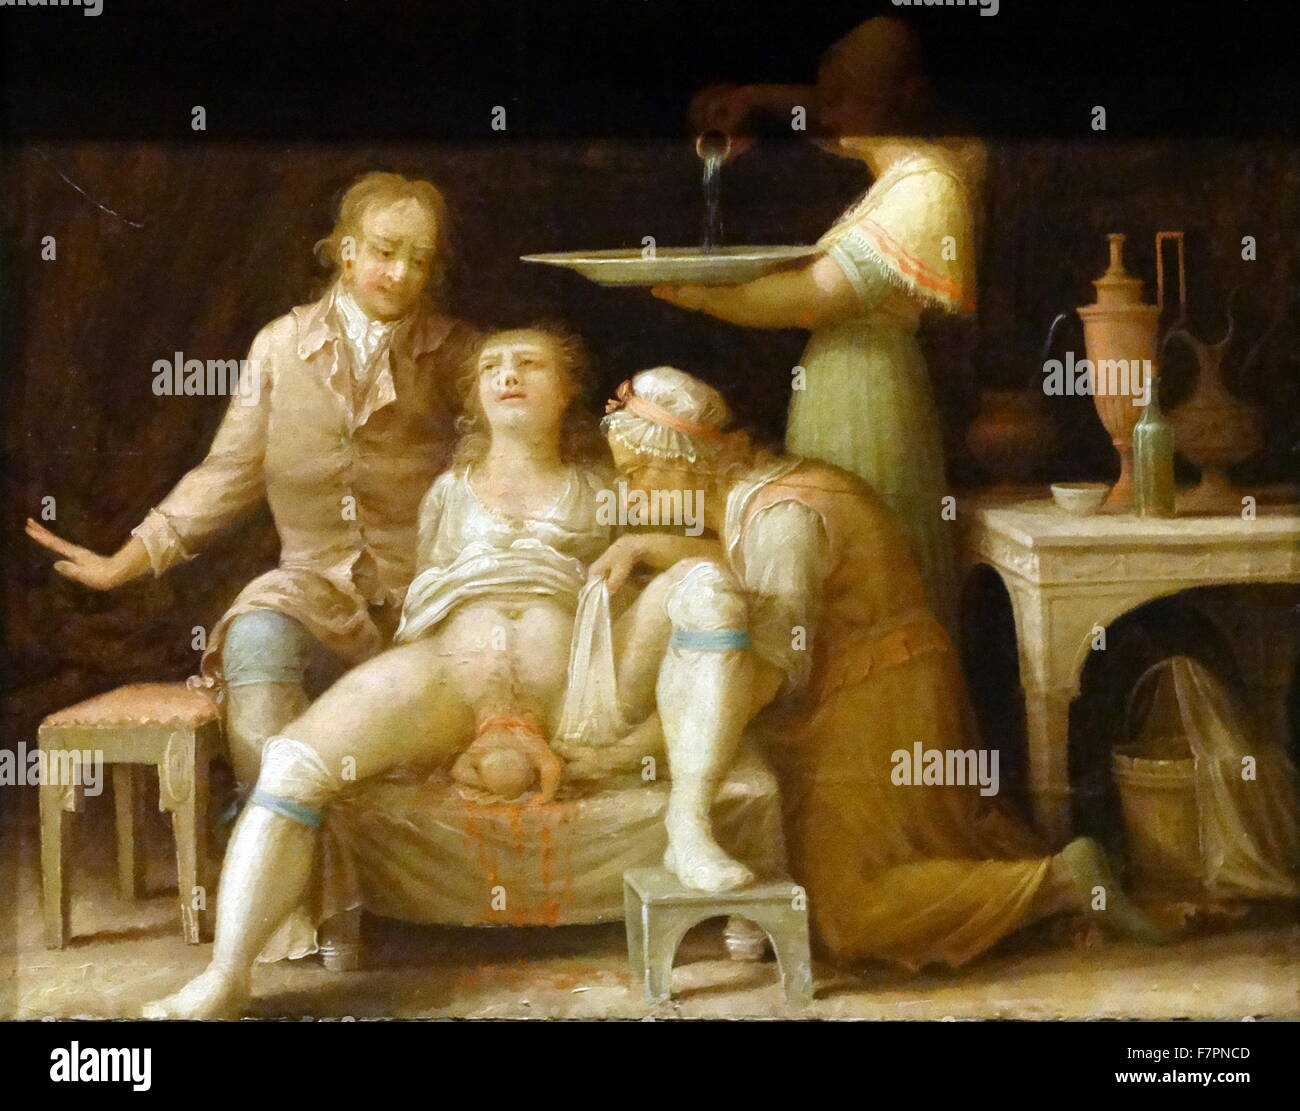 Oil Painting of a Birth Scene', oil on paper, France, 1800. Painting shows a caricature of a midwife attending - Stock Image